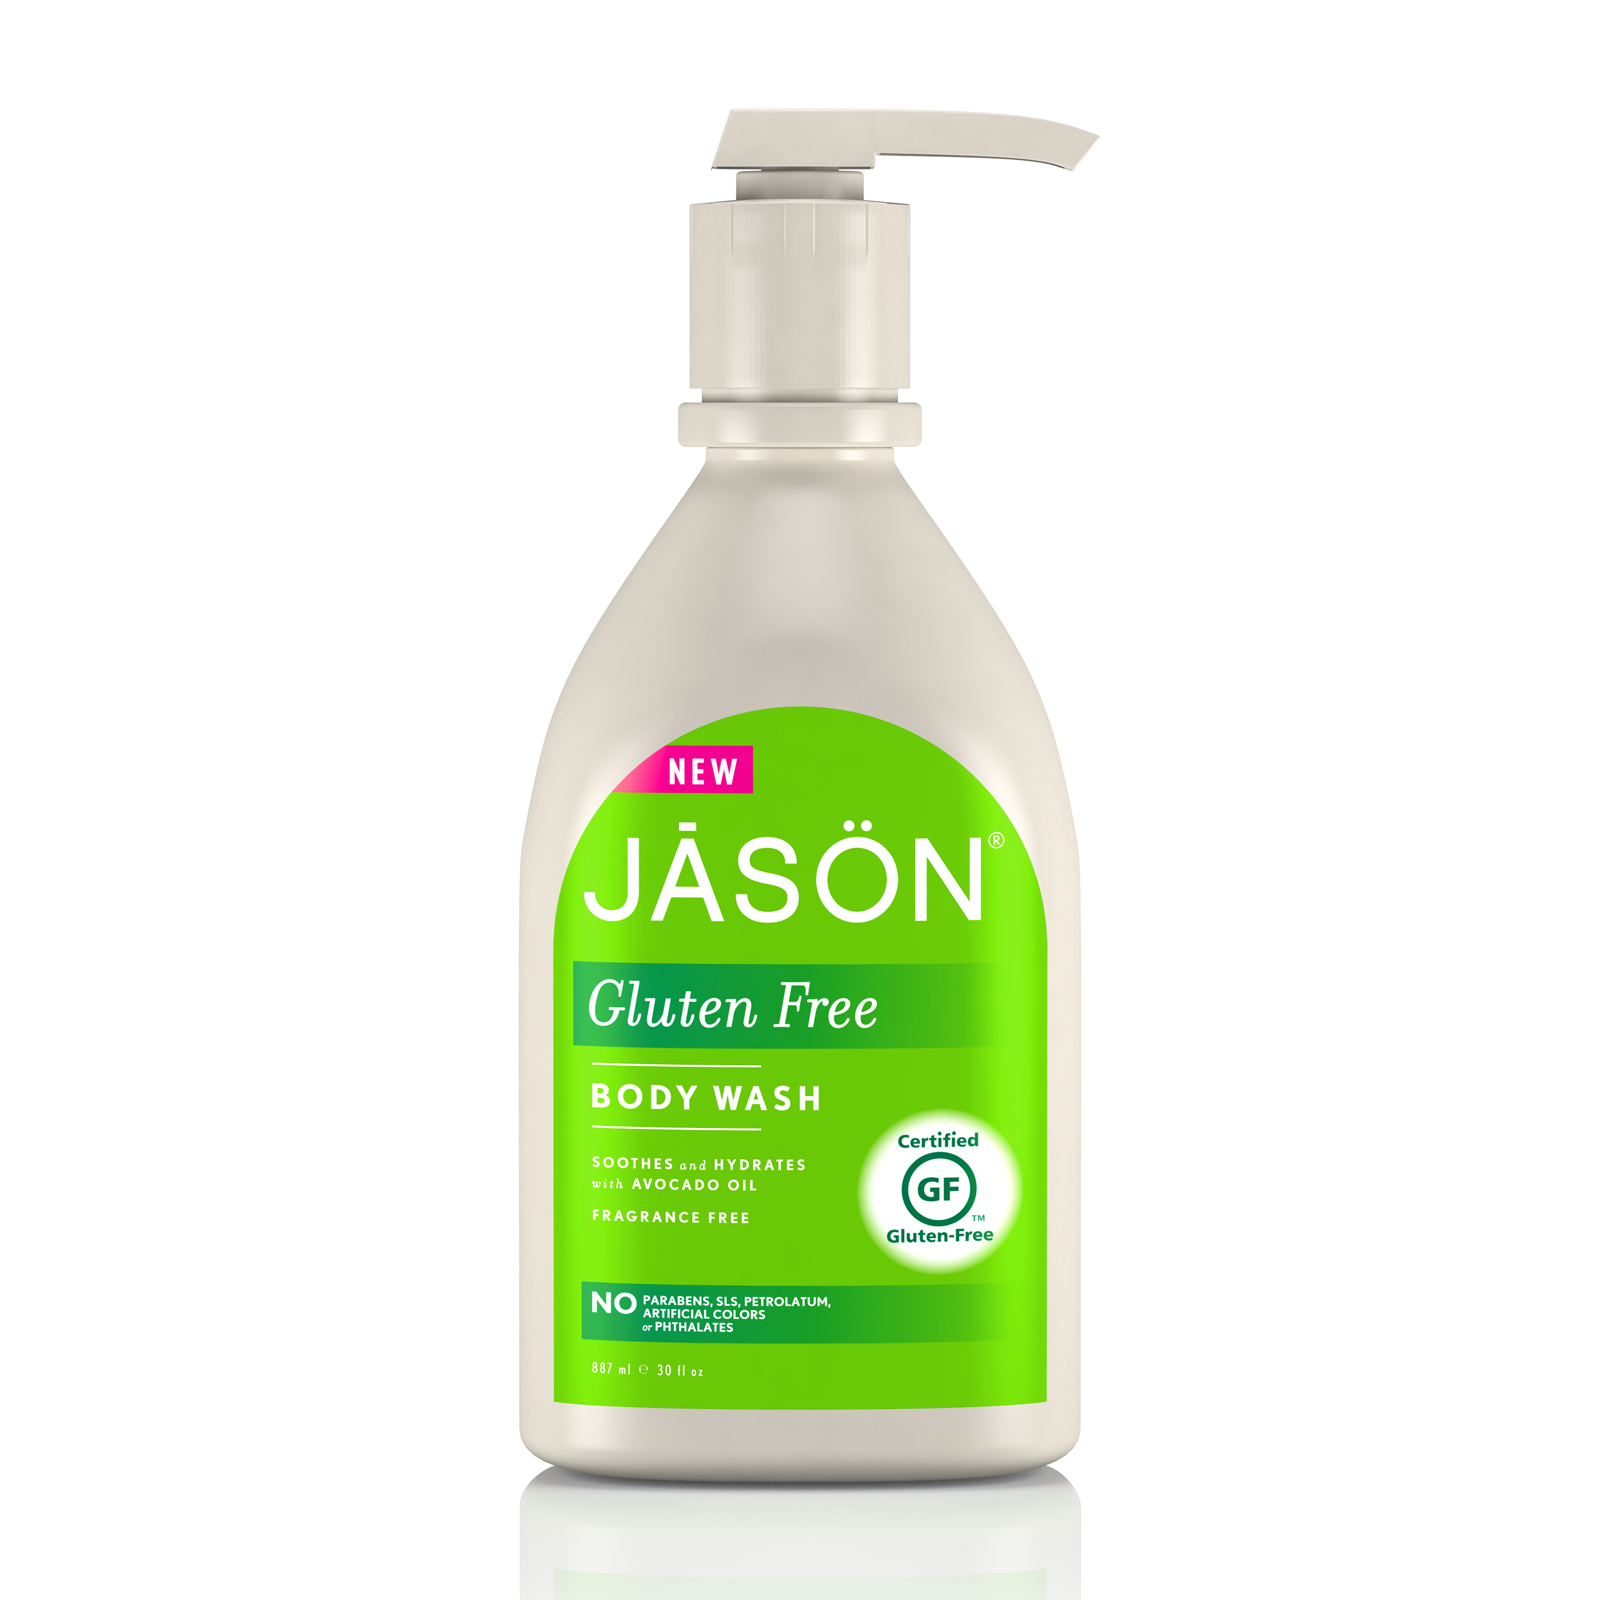 Ila Body Wash Jason Gluten Free Body Wash